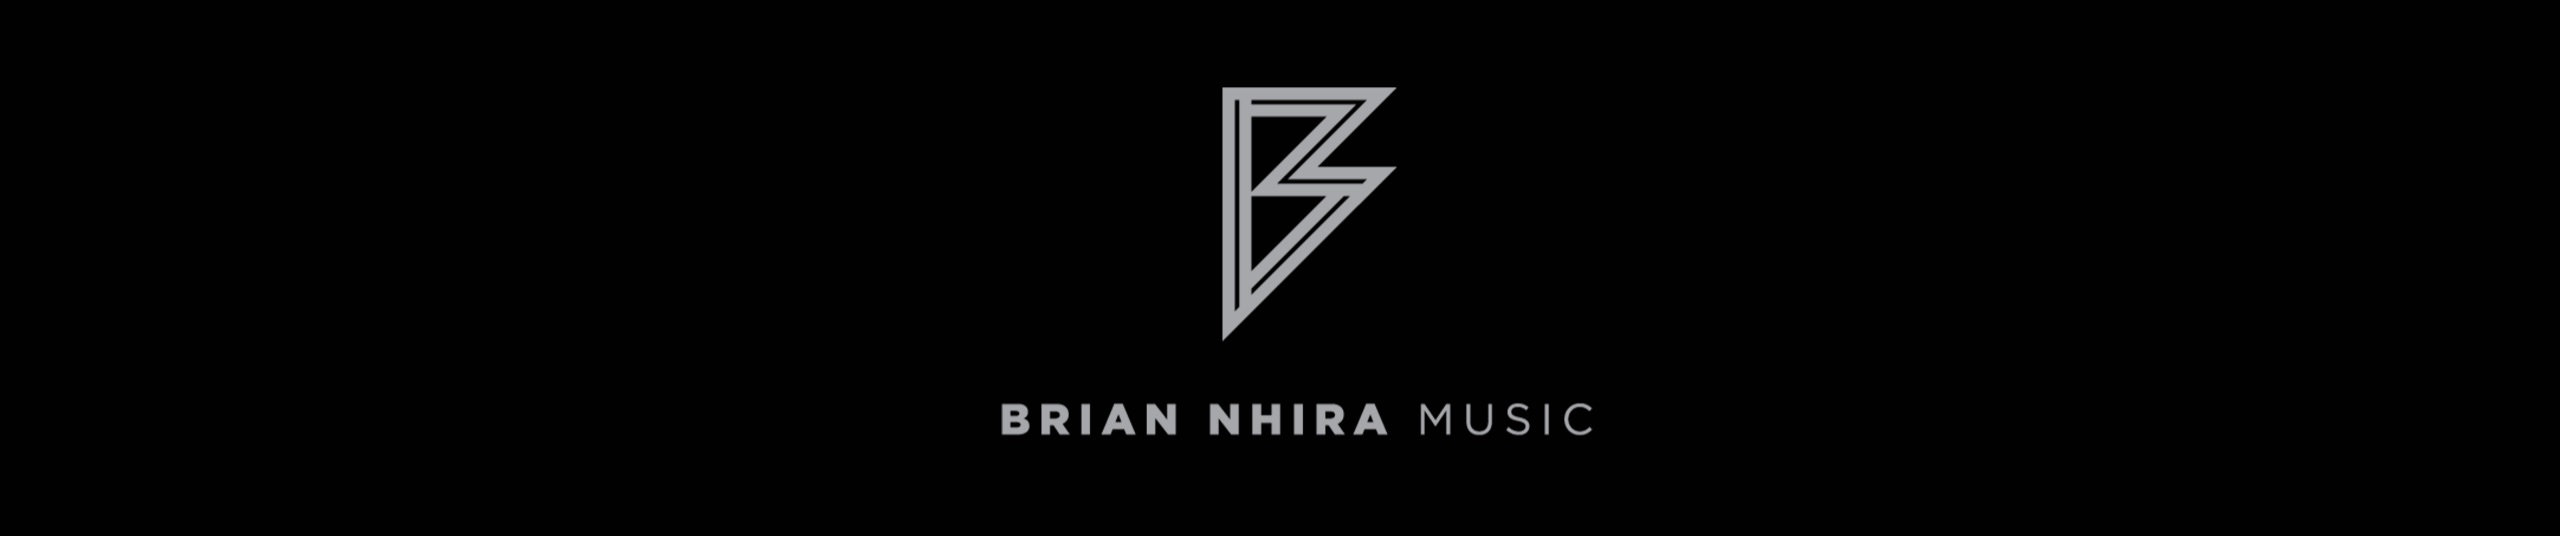 Would You Still Love Me? (Free Download) by Brian Nhira